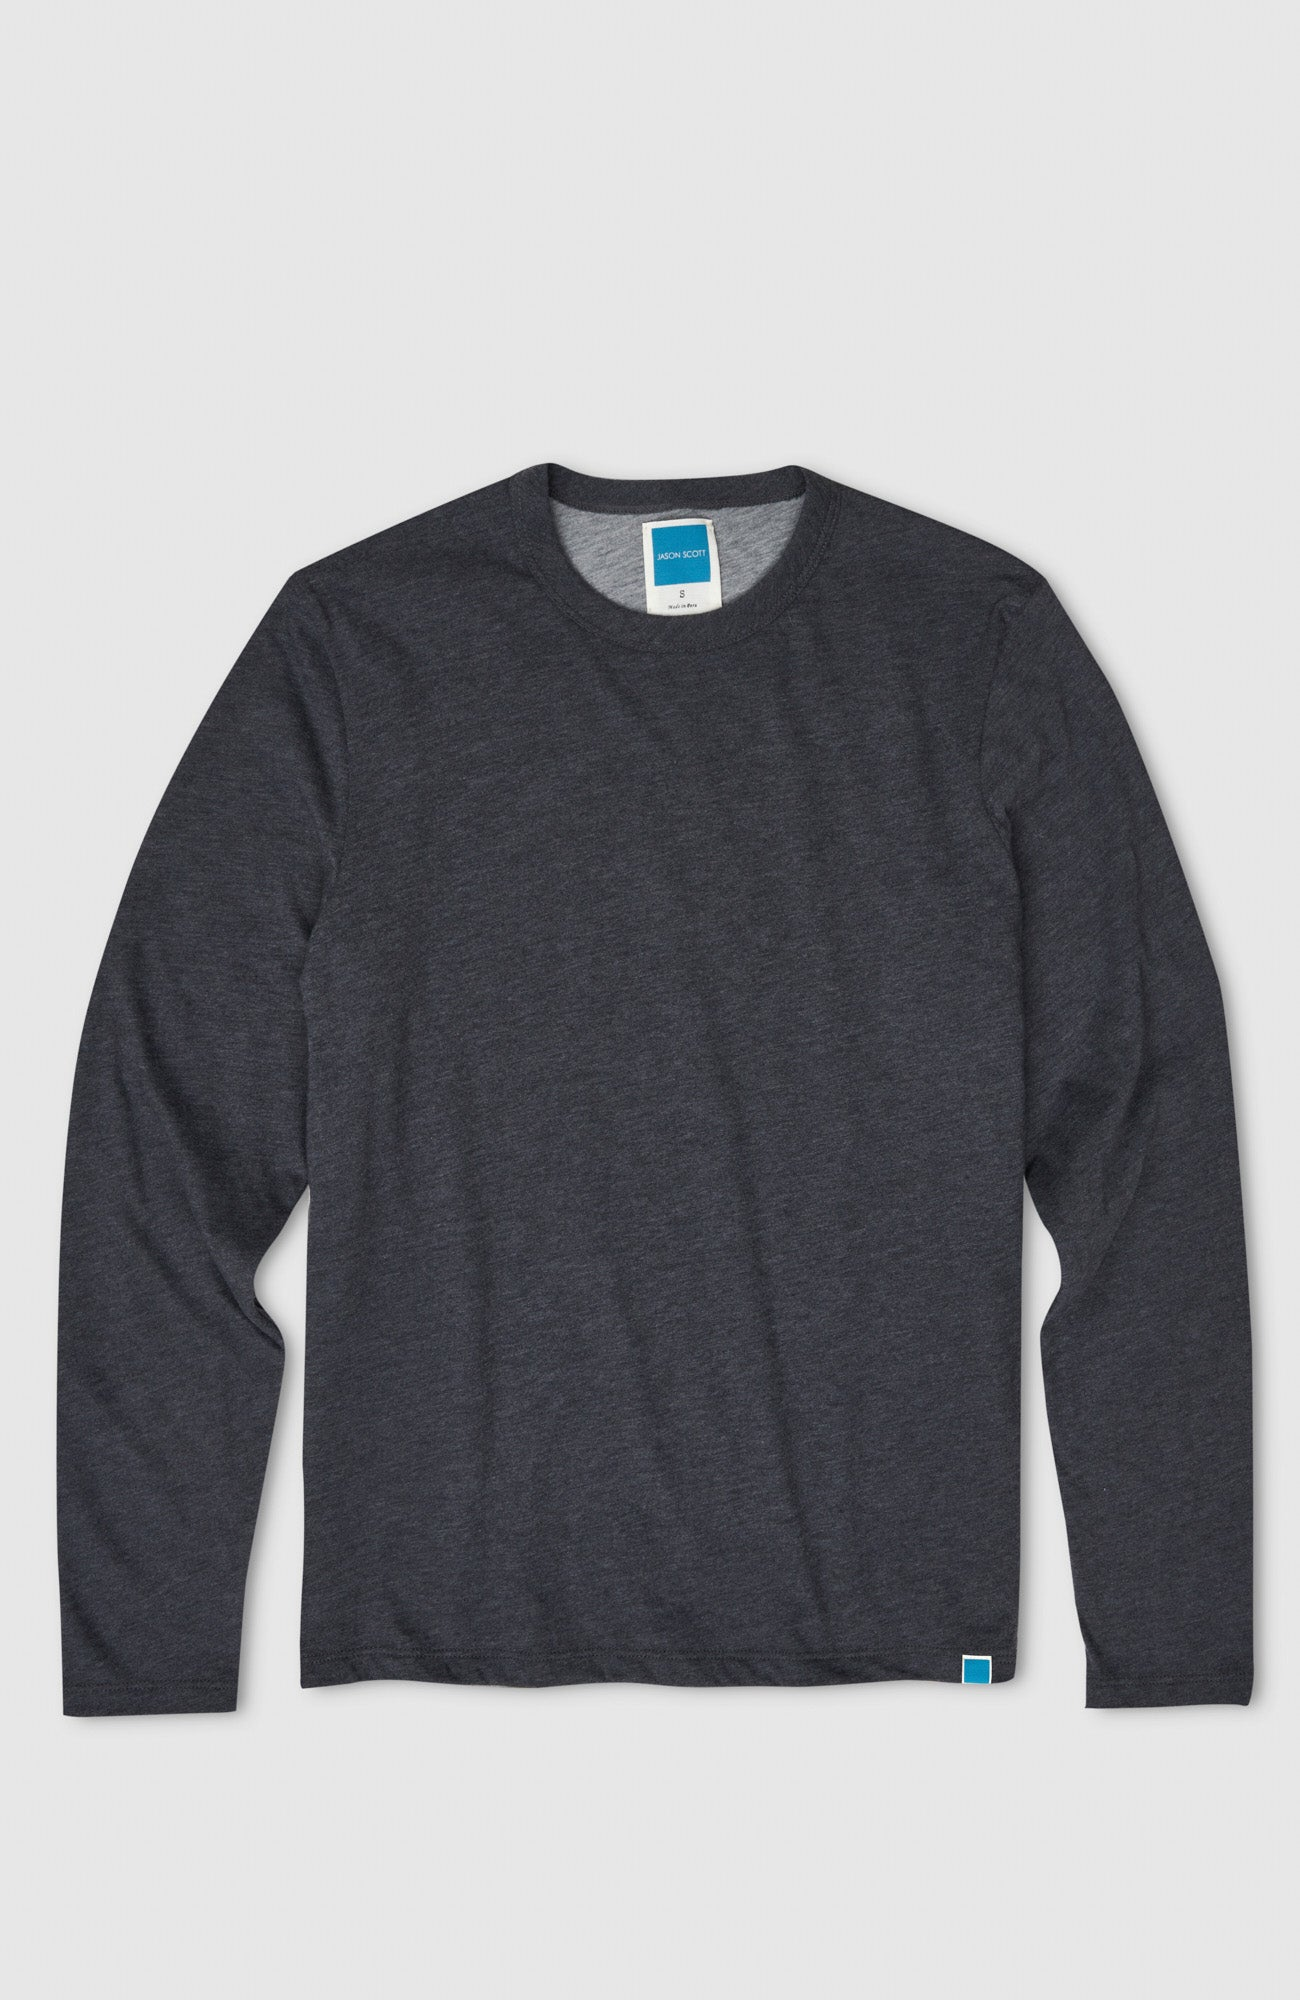 Double Layer L/S - Heather Charcoal